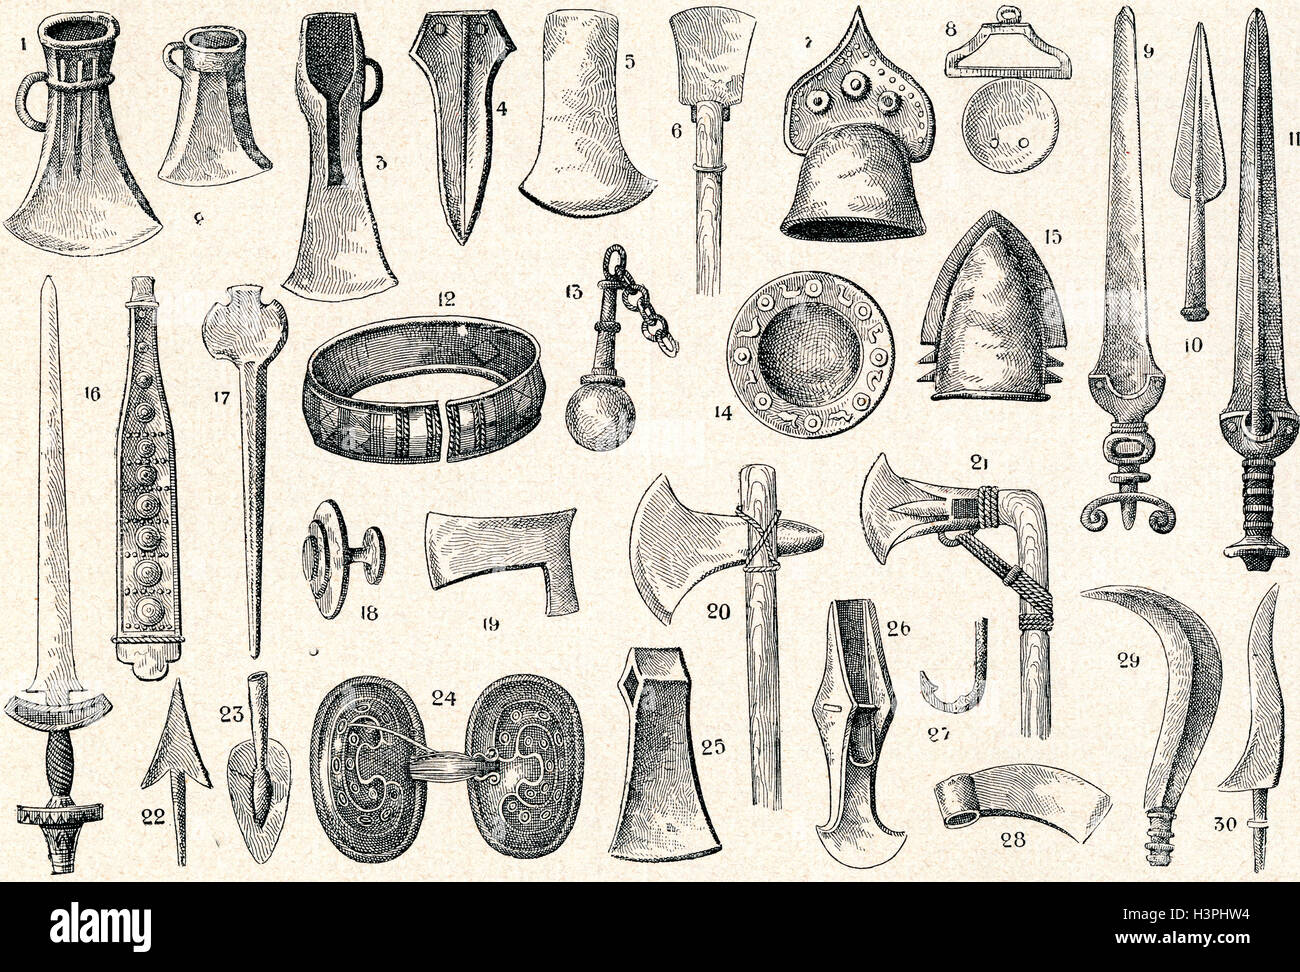 Bronze Age weapons, tools and relics. - Stock Image